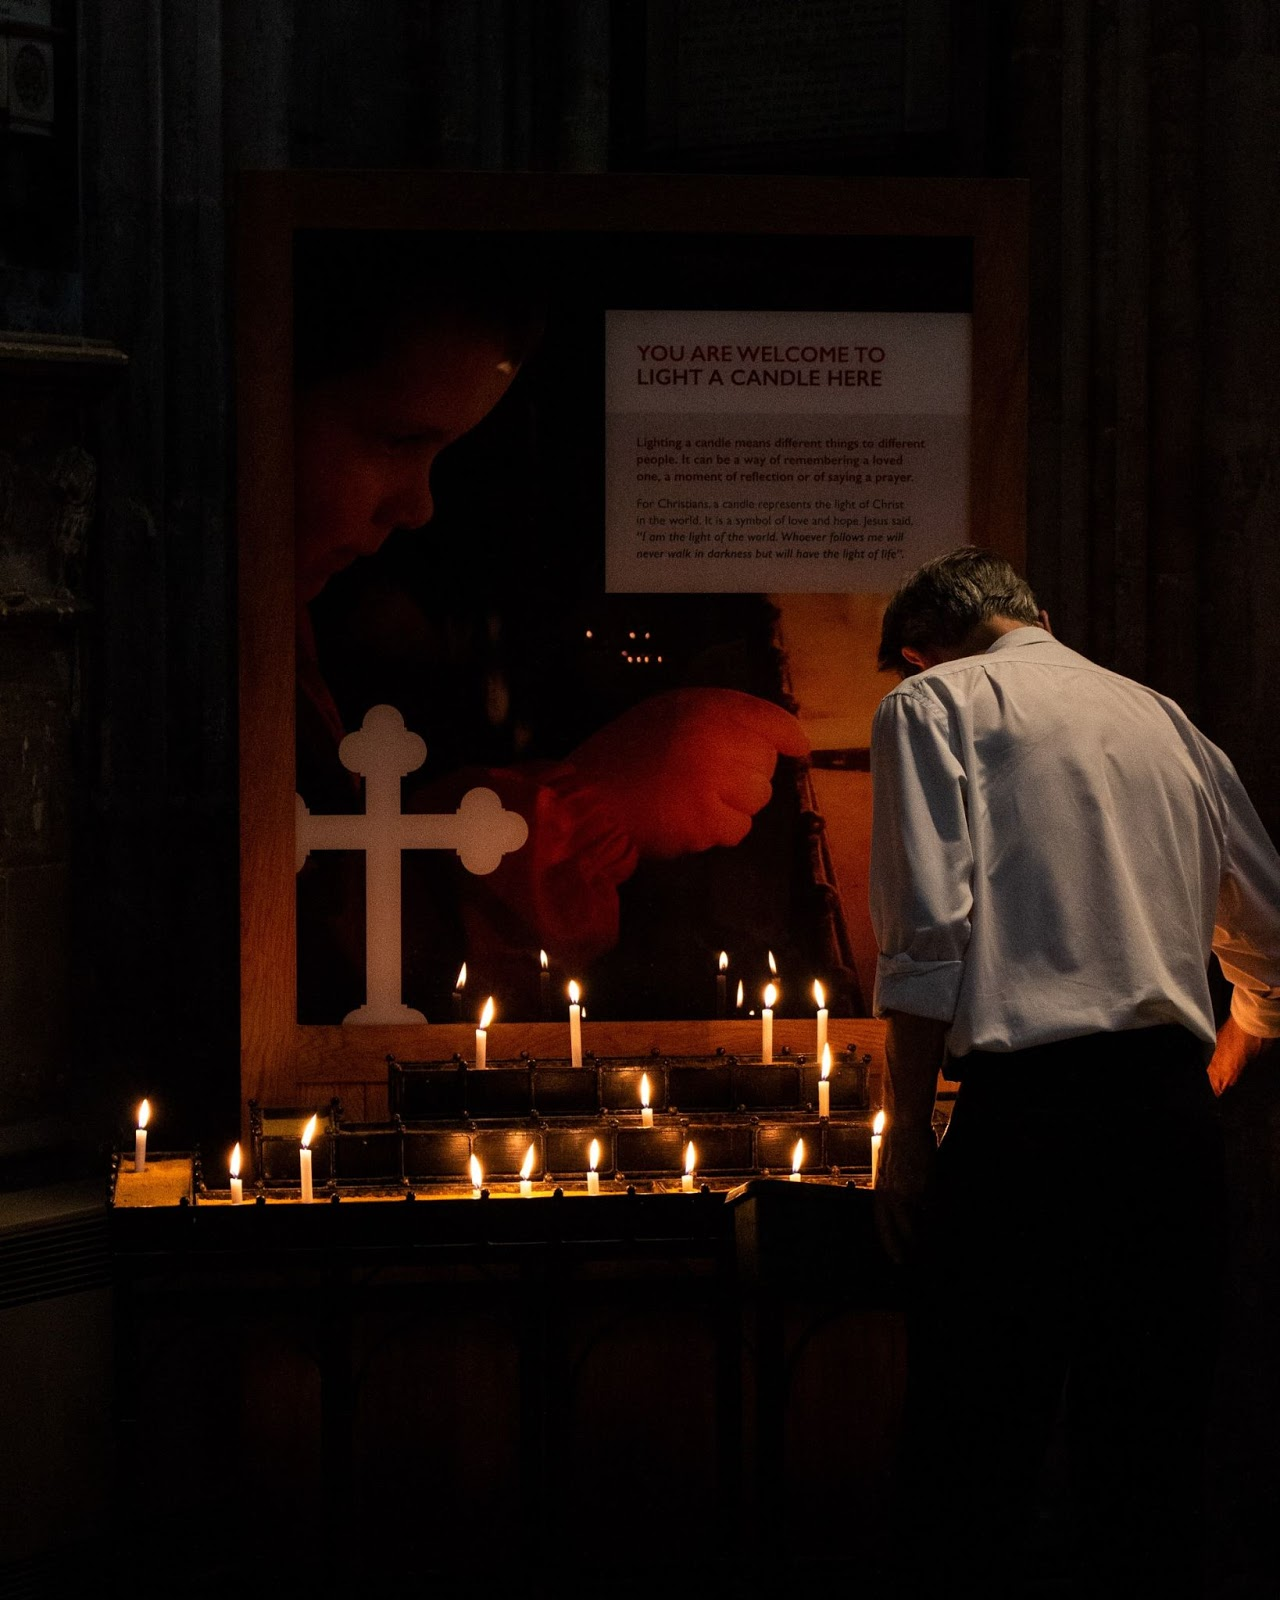 A man by an alter of candles